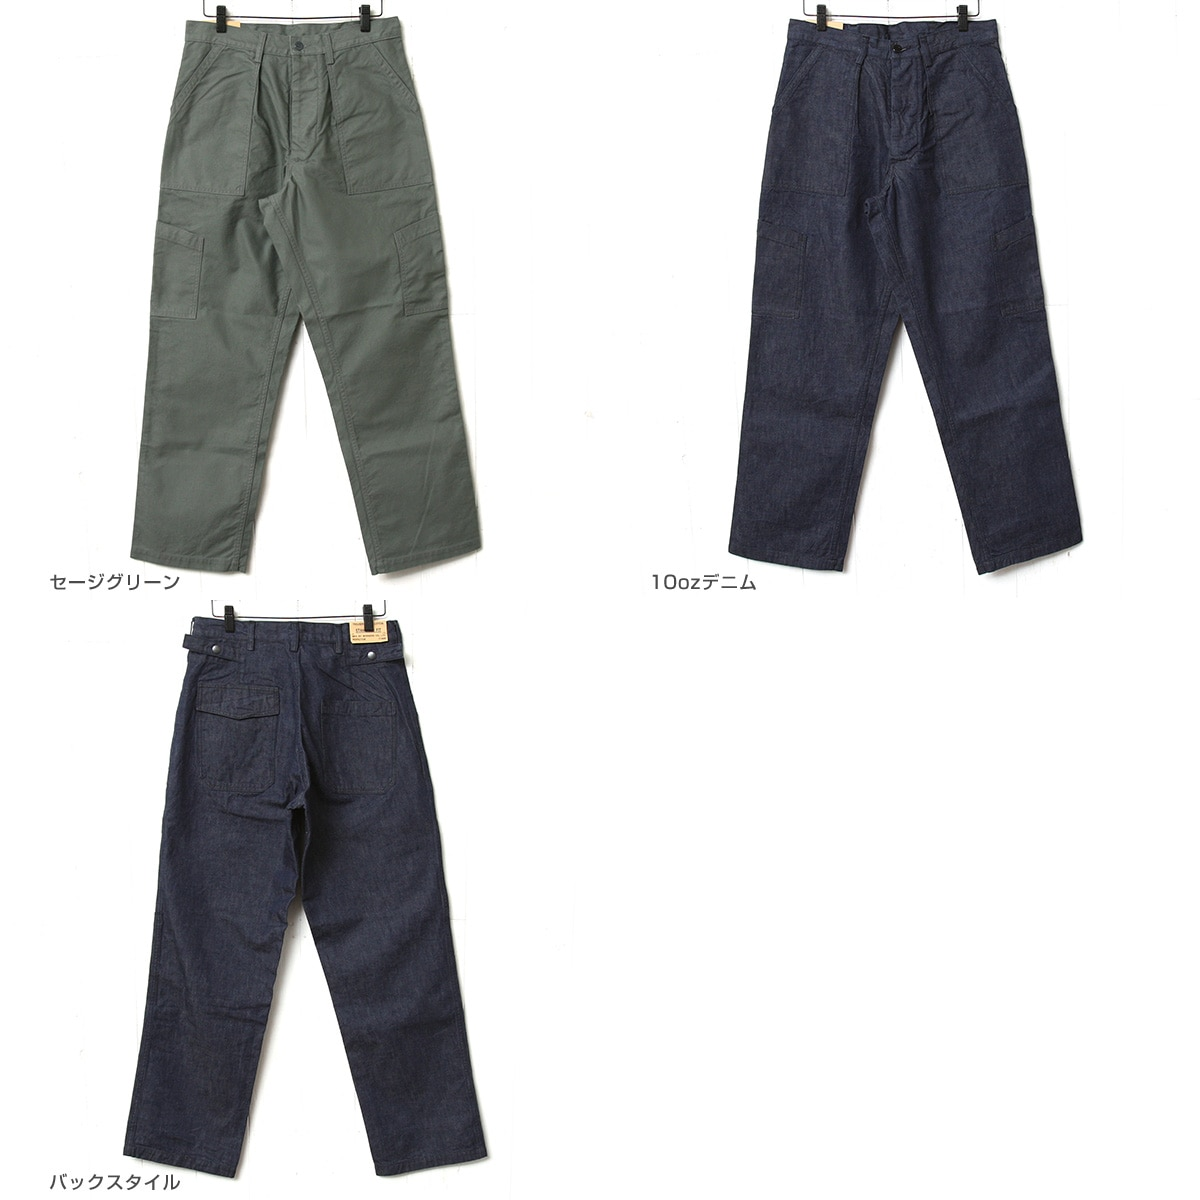 WORKERS ワーカーズ Air Force Baker Standard-Fit エアフォースベーカーパンツ スタンダードフィット